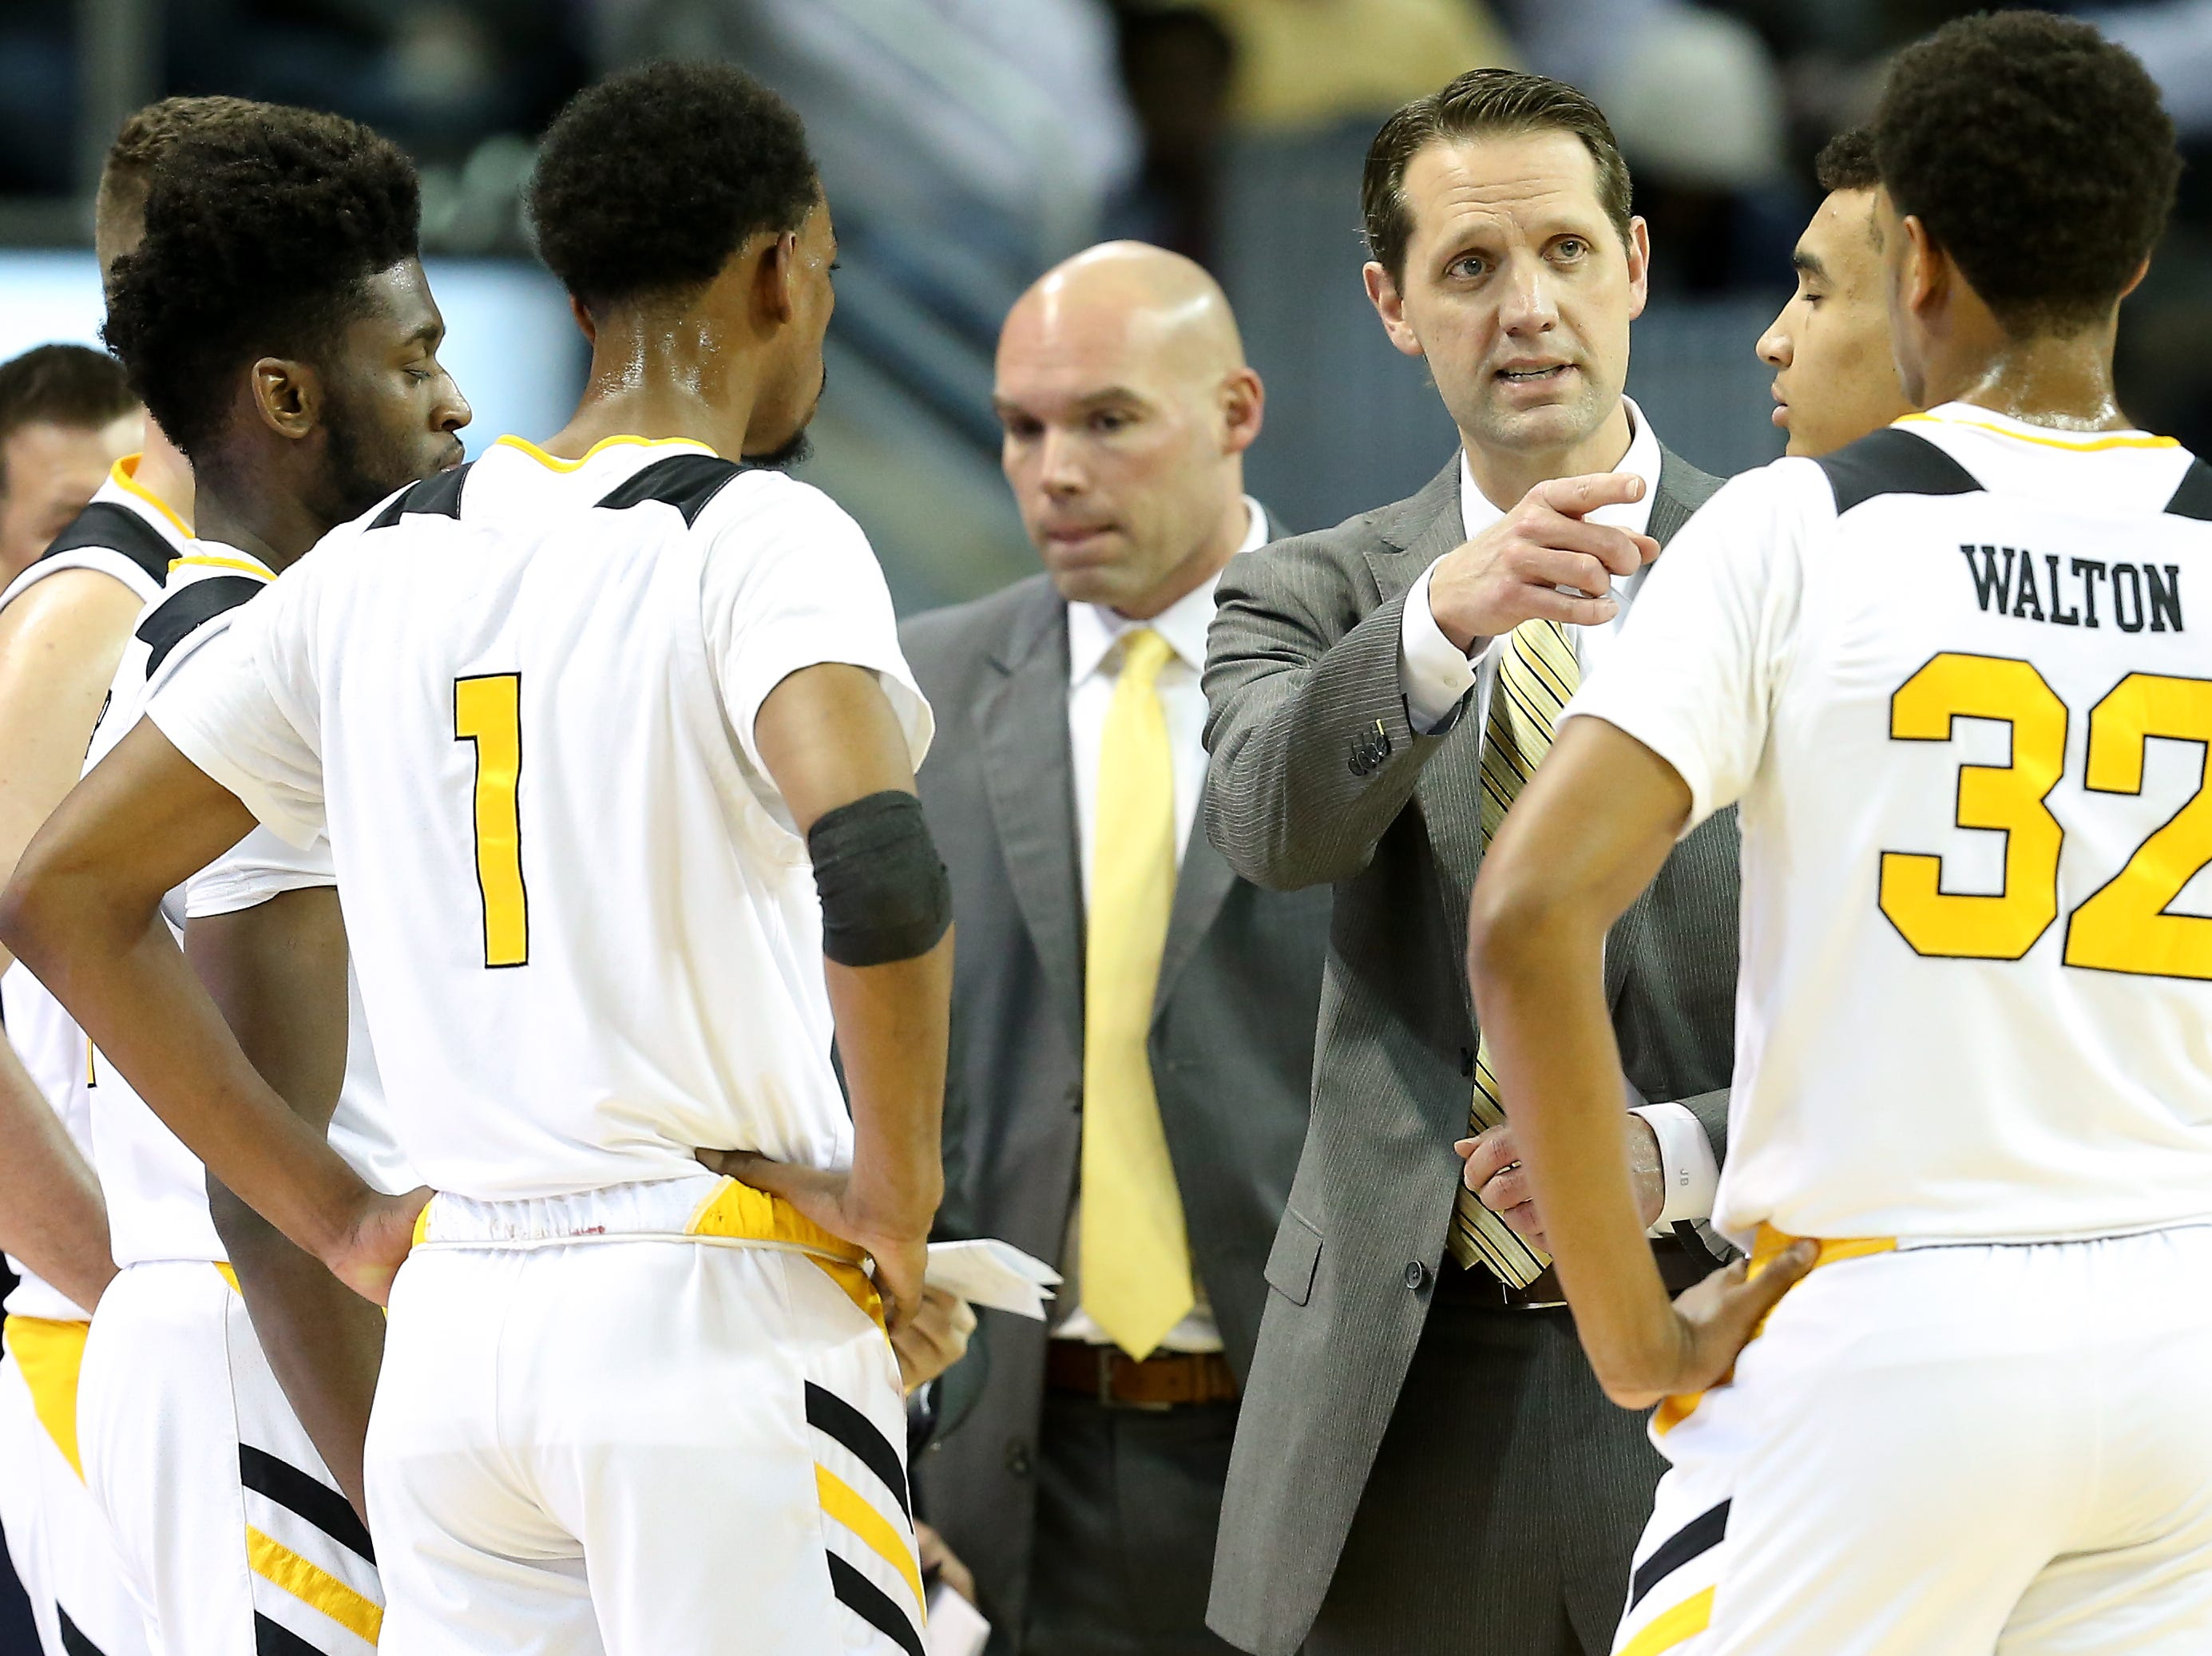 Northern Kentucky head coach John Brannen instructs the team during a timeout in the first half.